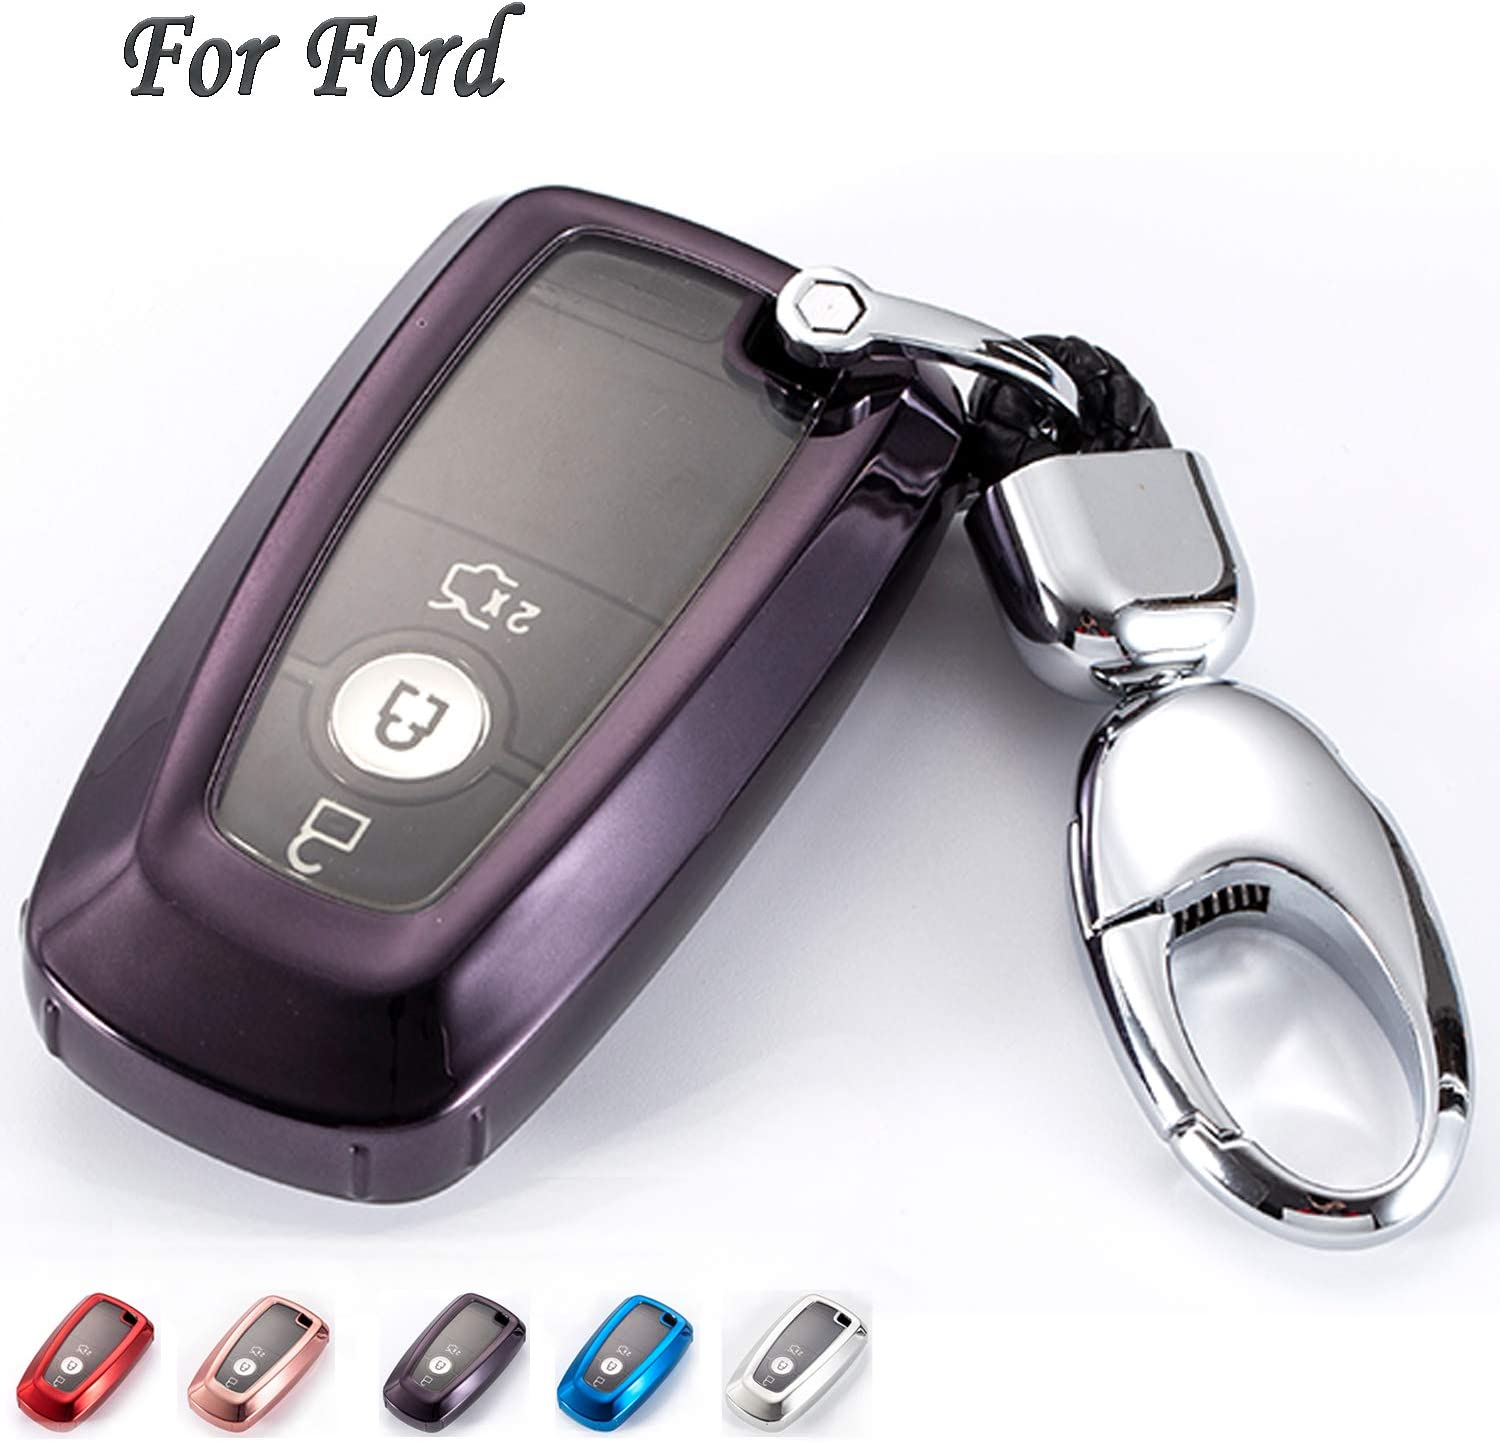 Red K LAKEY Car Key Fob Cover,Fit for Ford Edge 2018-2019 Ford Mondeo 2018-2019,Raptor 2018-2019,Mustang 2018-2019 TPU Protector Key Fob Case Smart Car Remote Holder Car Key Shell with Keychain